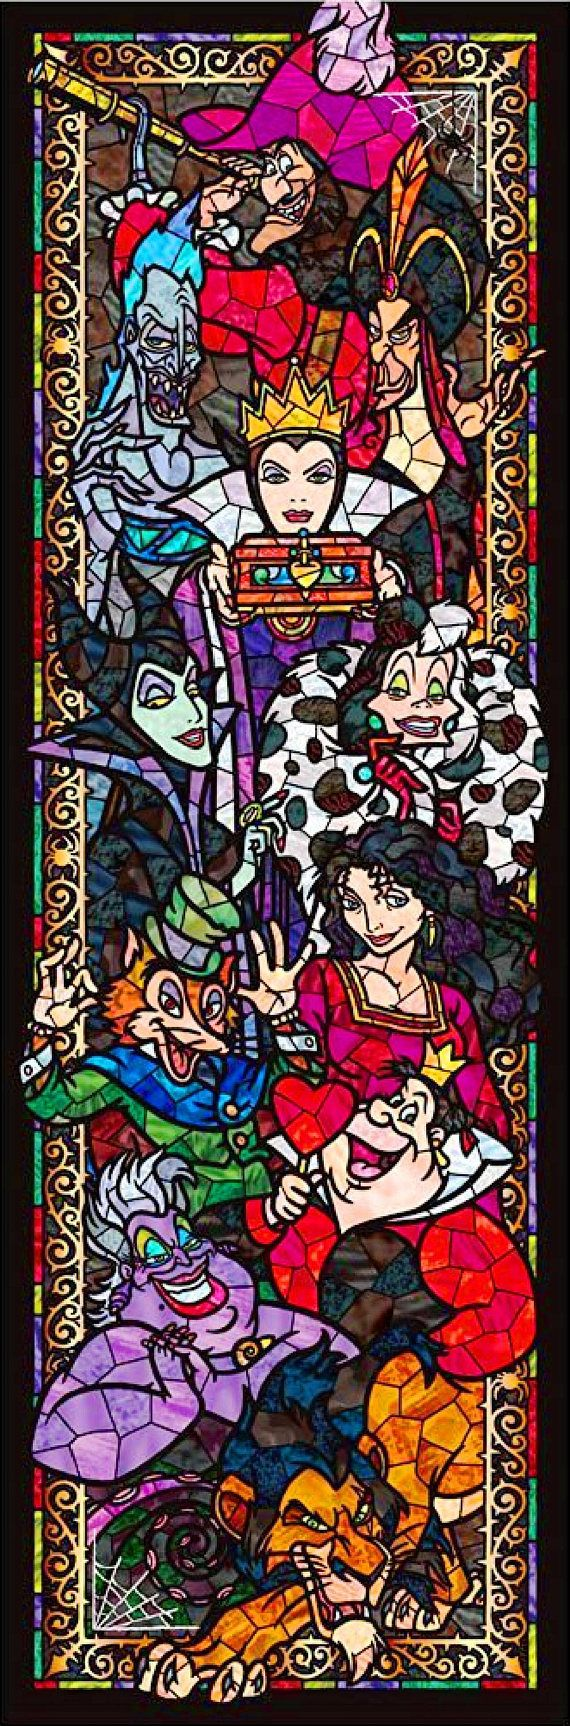 BUY 2, GET 1 FREE! Disney Villains Stained Glass 033 Cross Stitch Pattern Counted Cross Stitch Chart, Pdf Format, Instant Download/121358 #stitchdisney